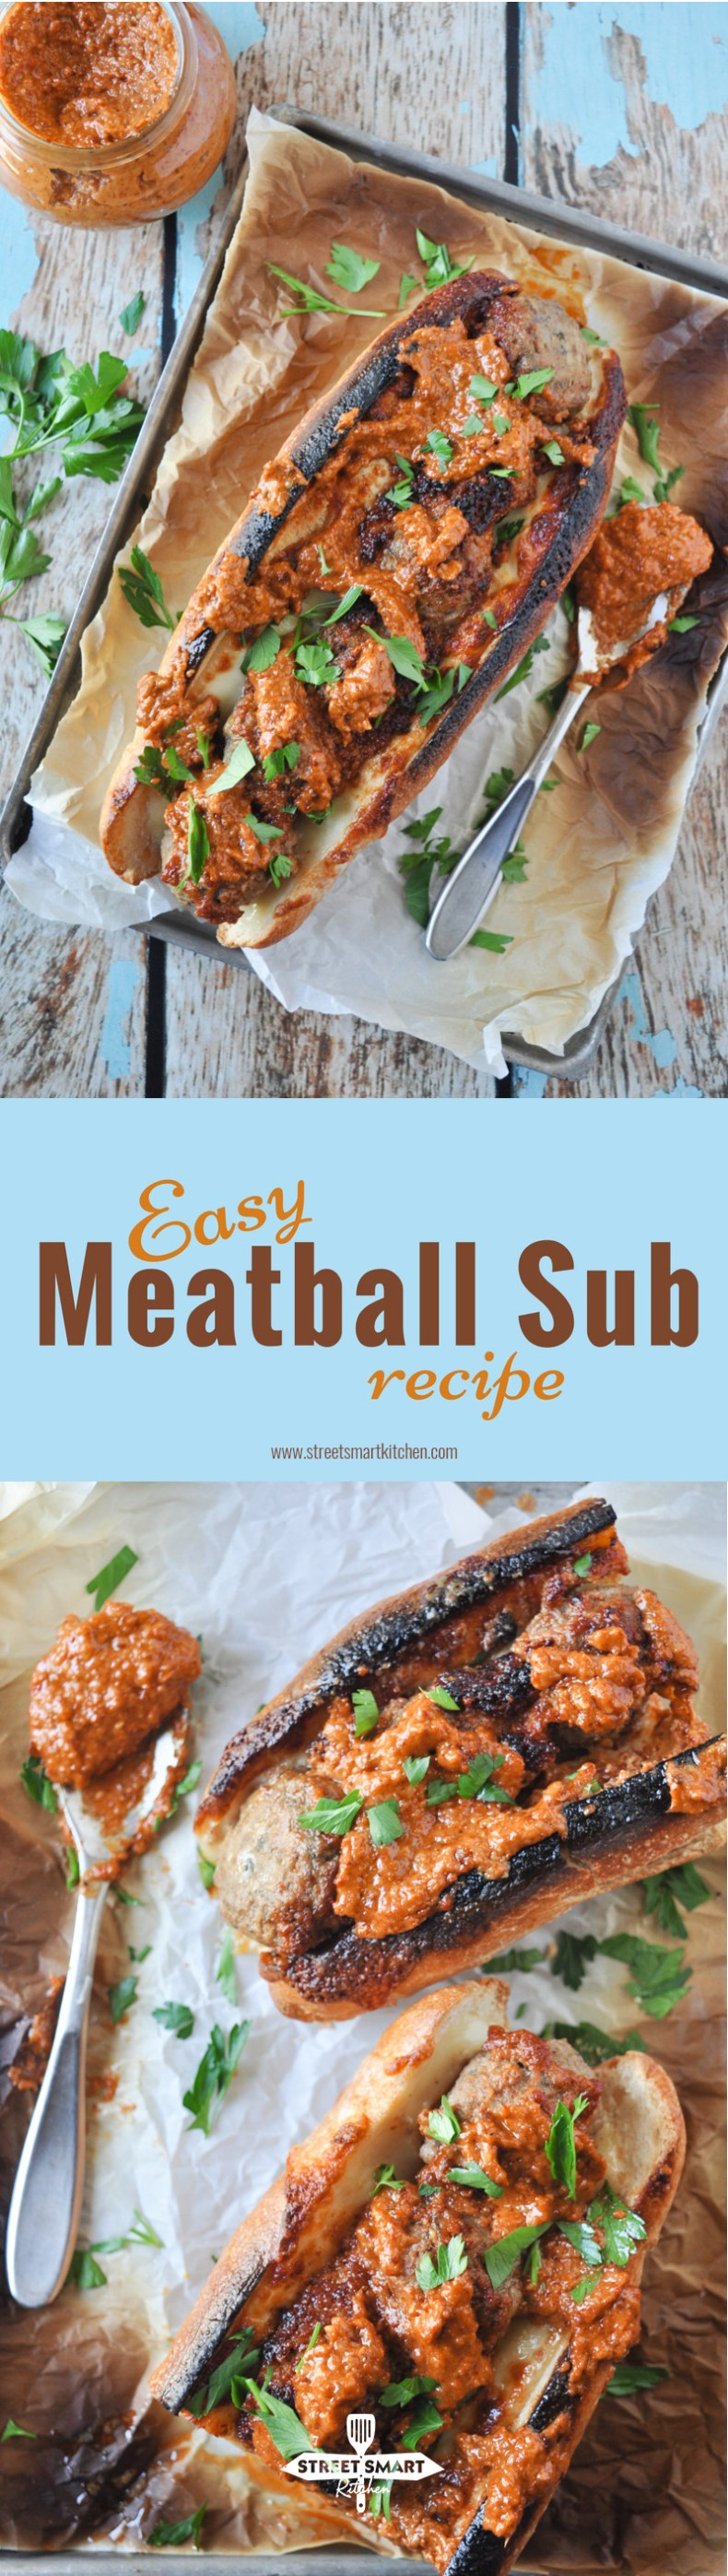 Meatballs stuffed into a loaf of demi baguette lined with provolone cheese, broiled until the cheese is melted and bubbly, then served with a couple spoonfuls of Chipotle Pecan Pesto and fresh parsley, this easy meatball sub recipe only requires 5 ingredients and 10 minutes of your precious time!